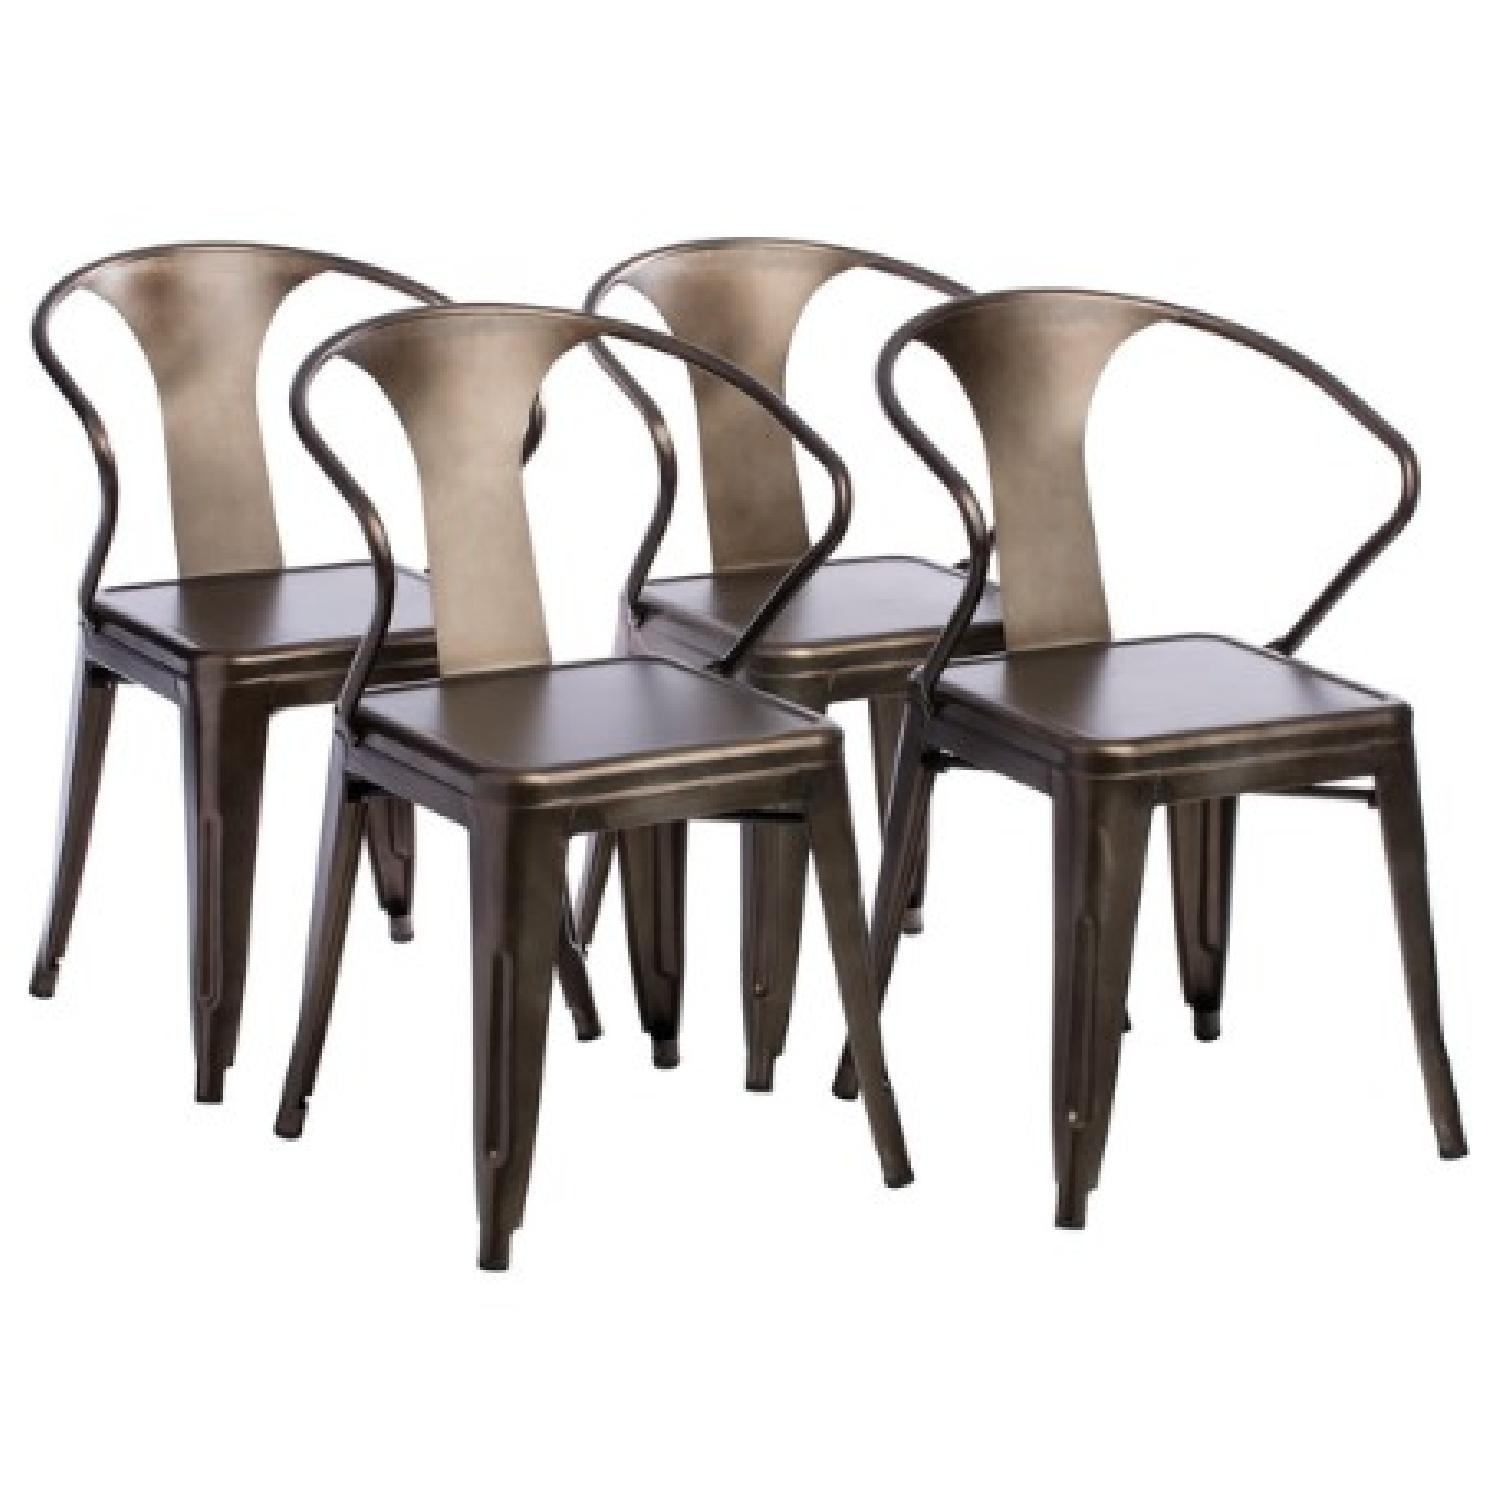 Vintage Tabouret Stacking Chairs - image-7